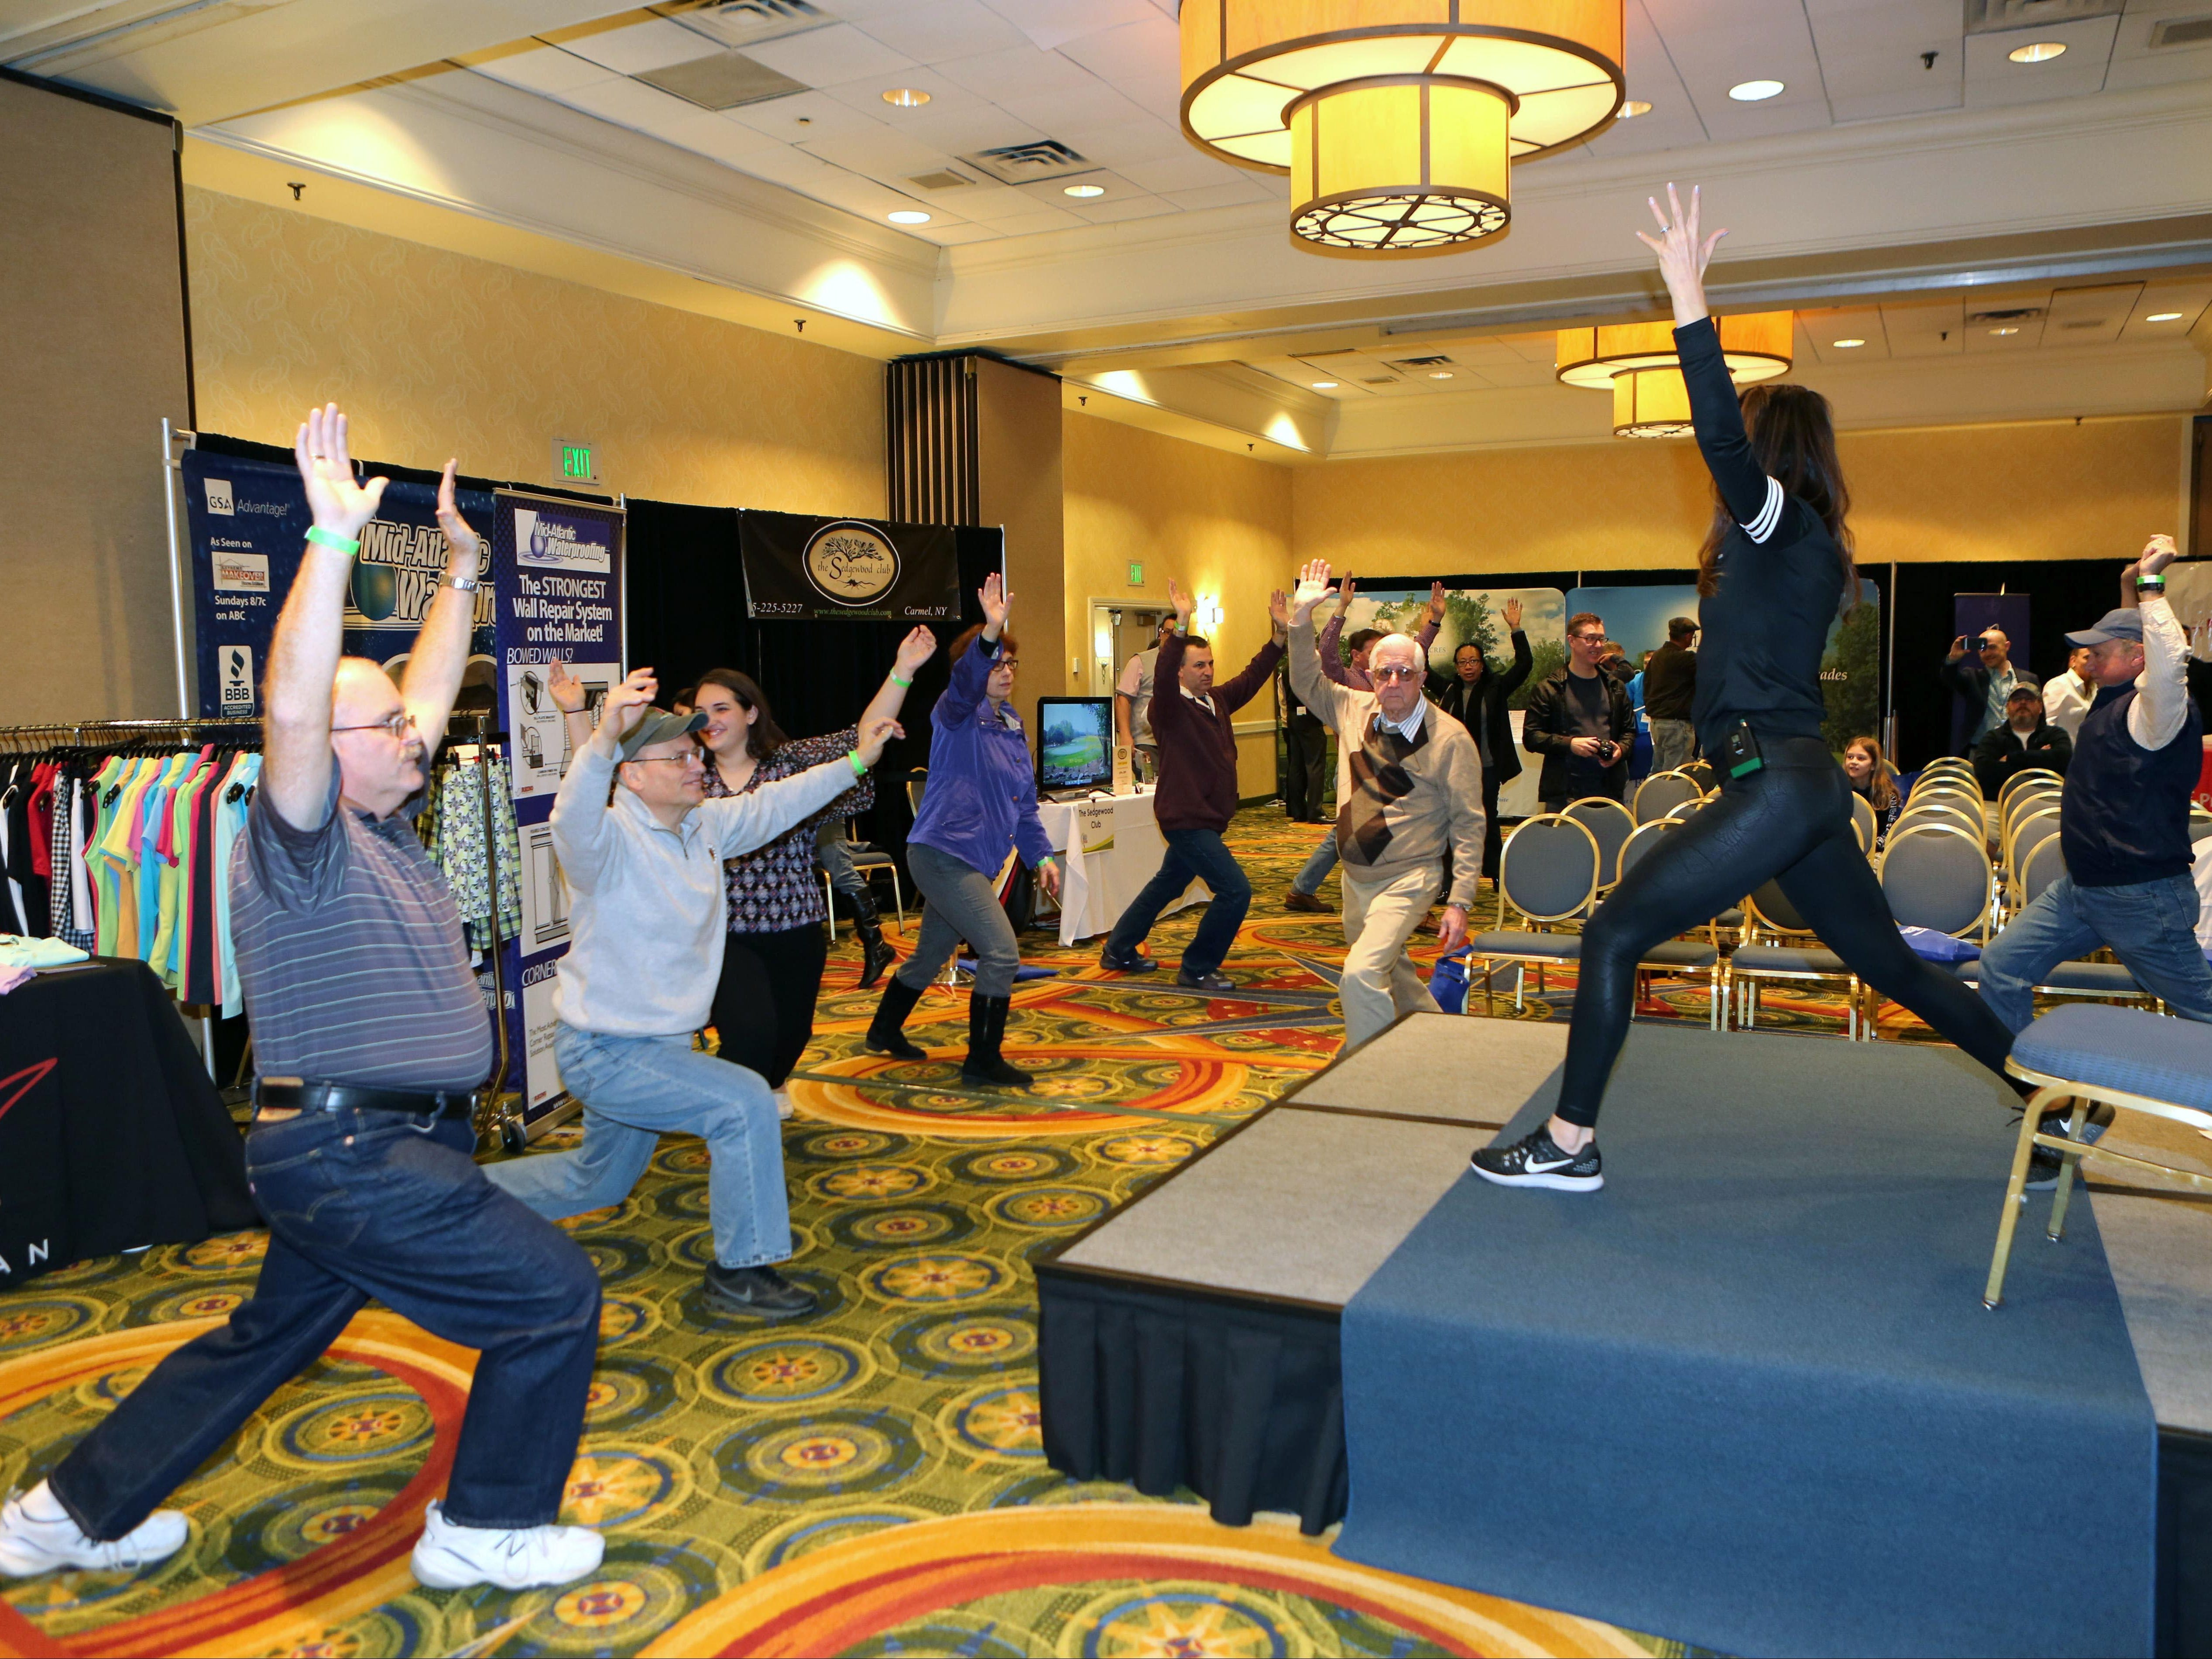 Yoga Instructor Karen Young puts attendees through some moves at the lohud.com Golf Show at the Westchester Marriott in Tarrytown Saturday. The show continues Sunday.